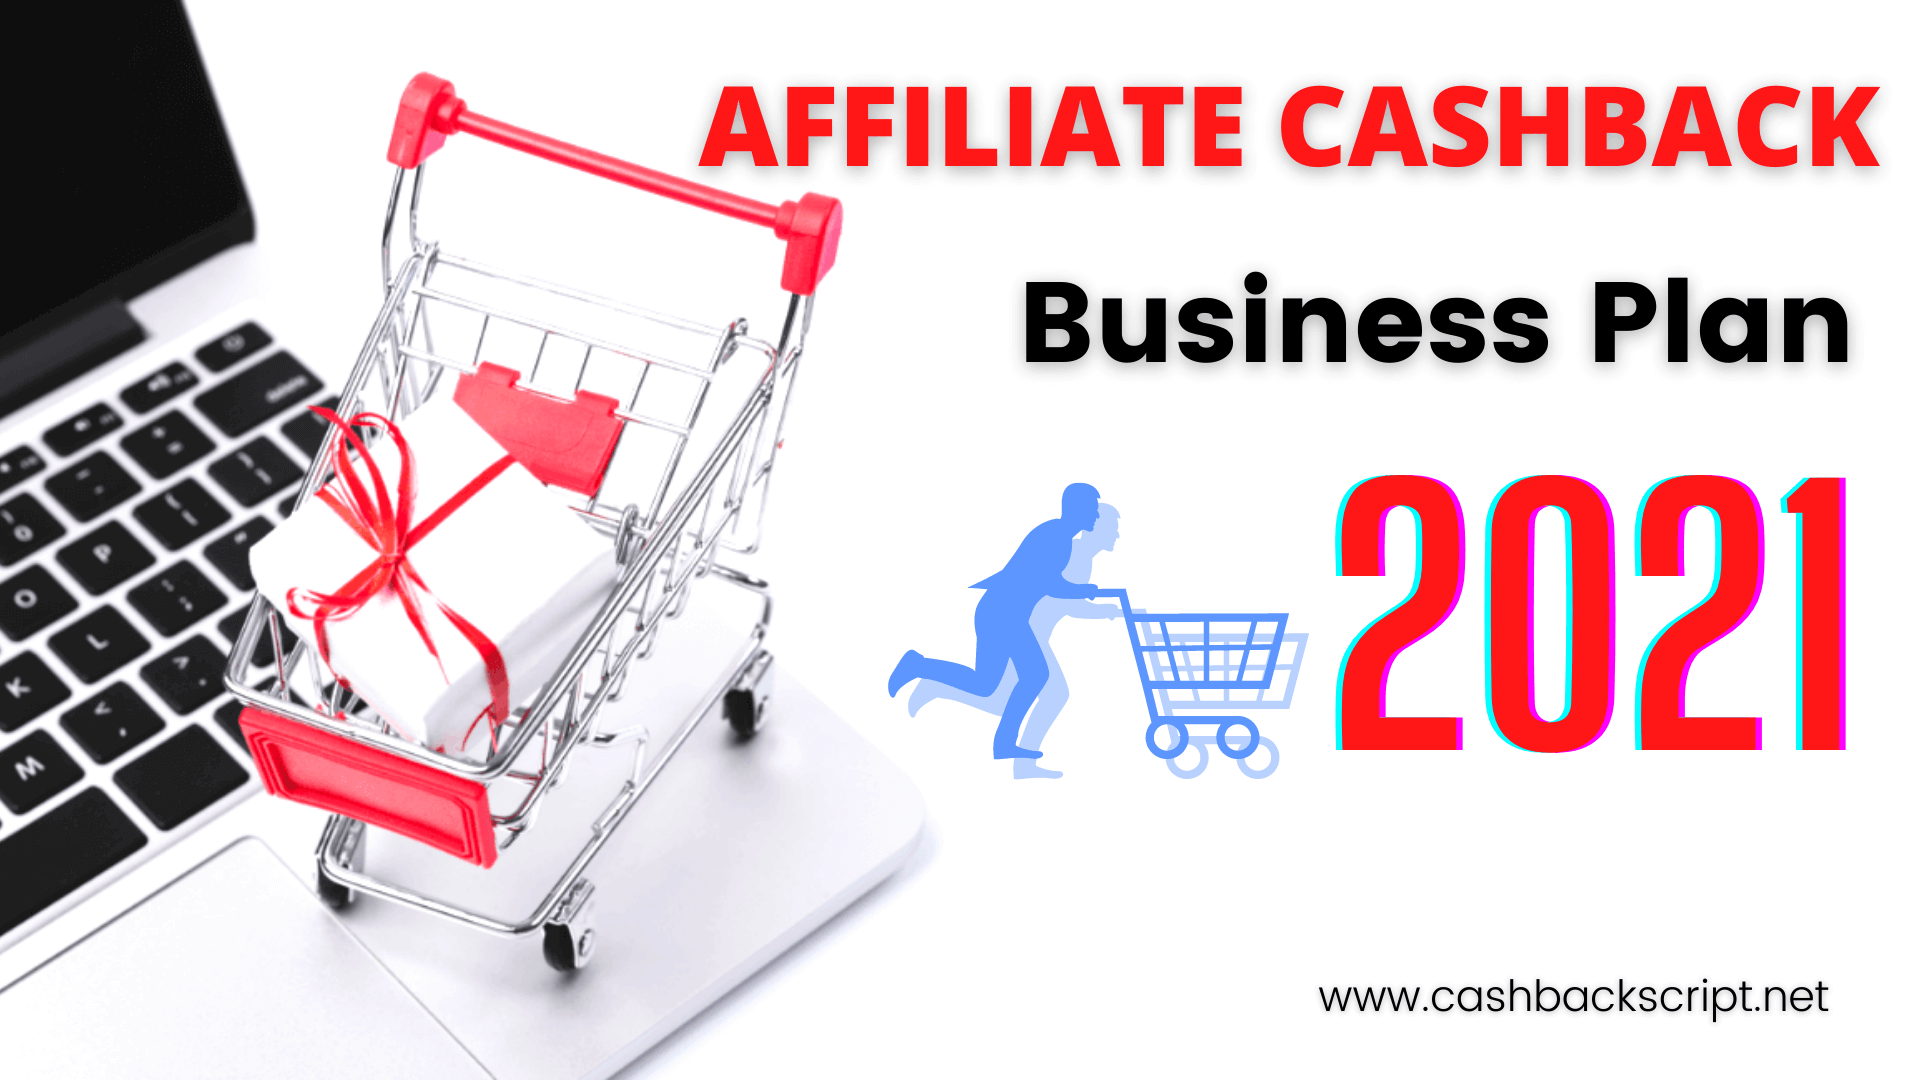 Affiliate Cash Back Business Plan & Revenue Model 2021